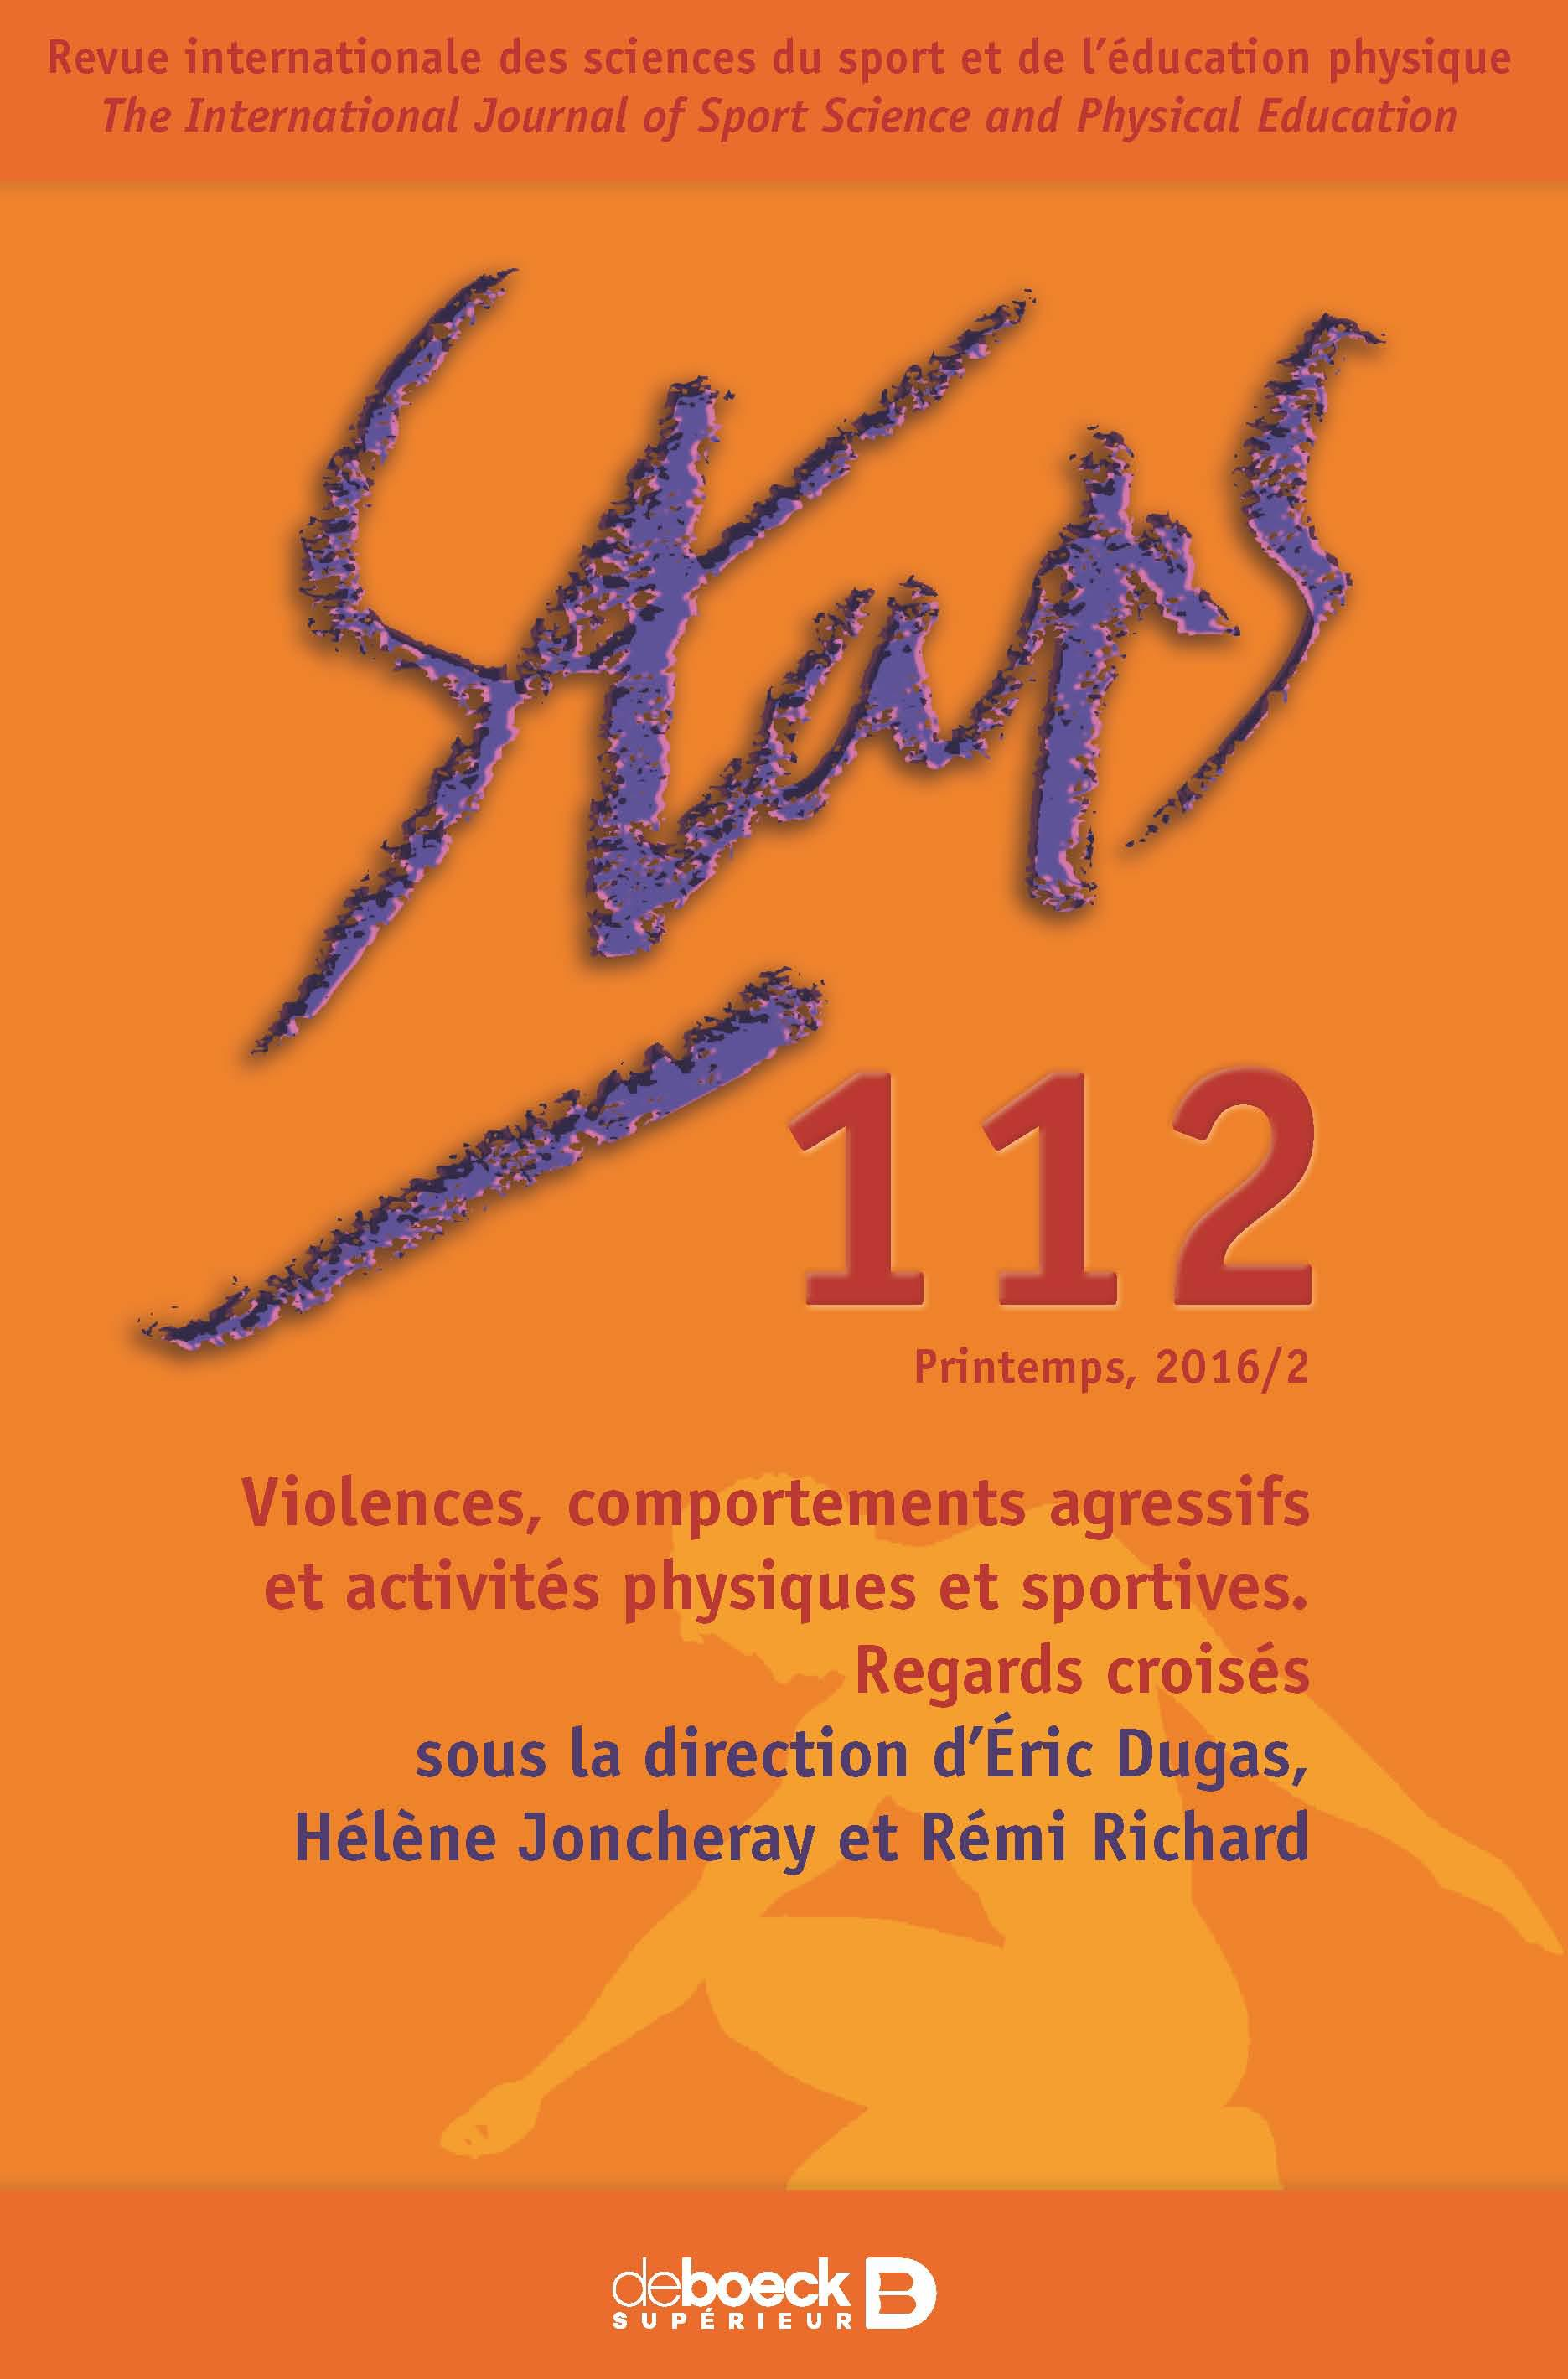 Teaching Practices And Symbolic Violence The Case Of Racket